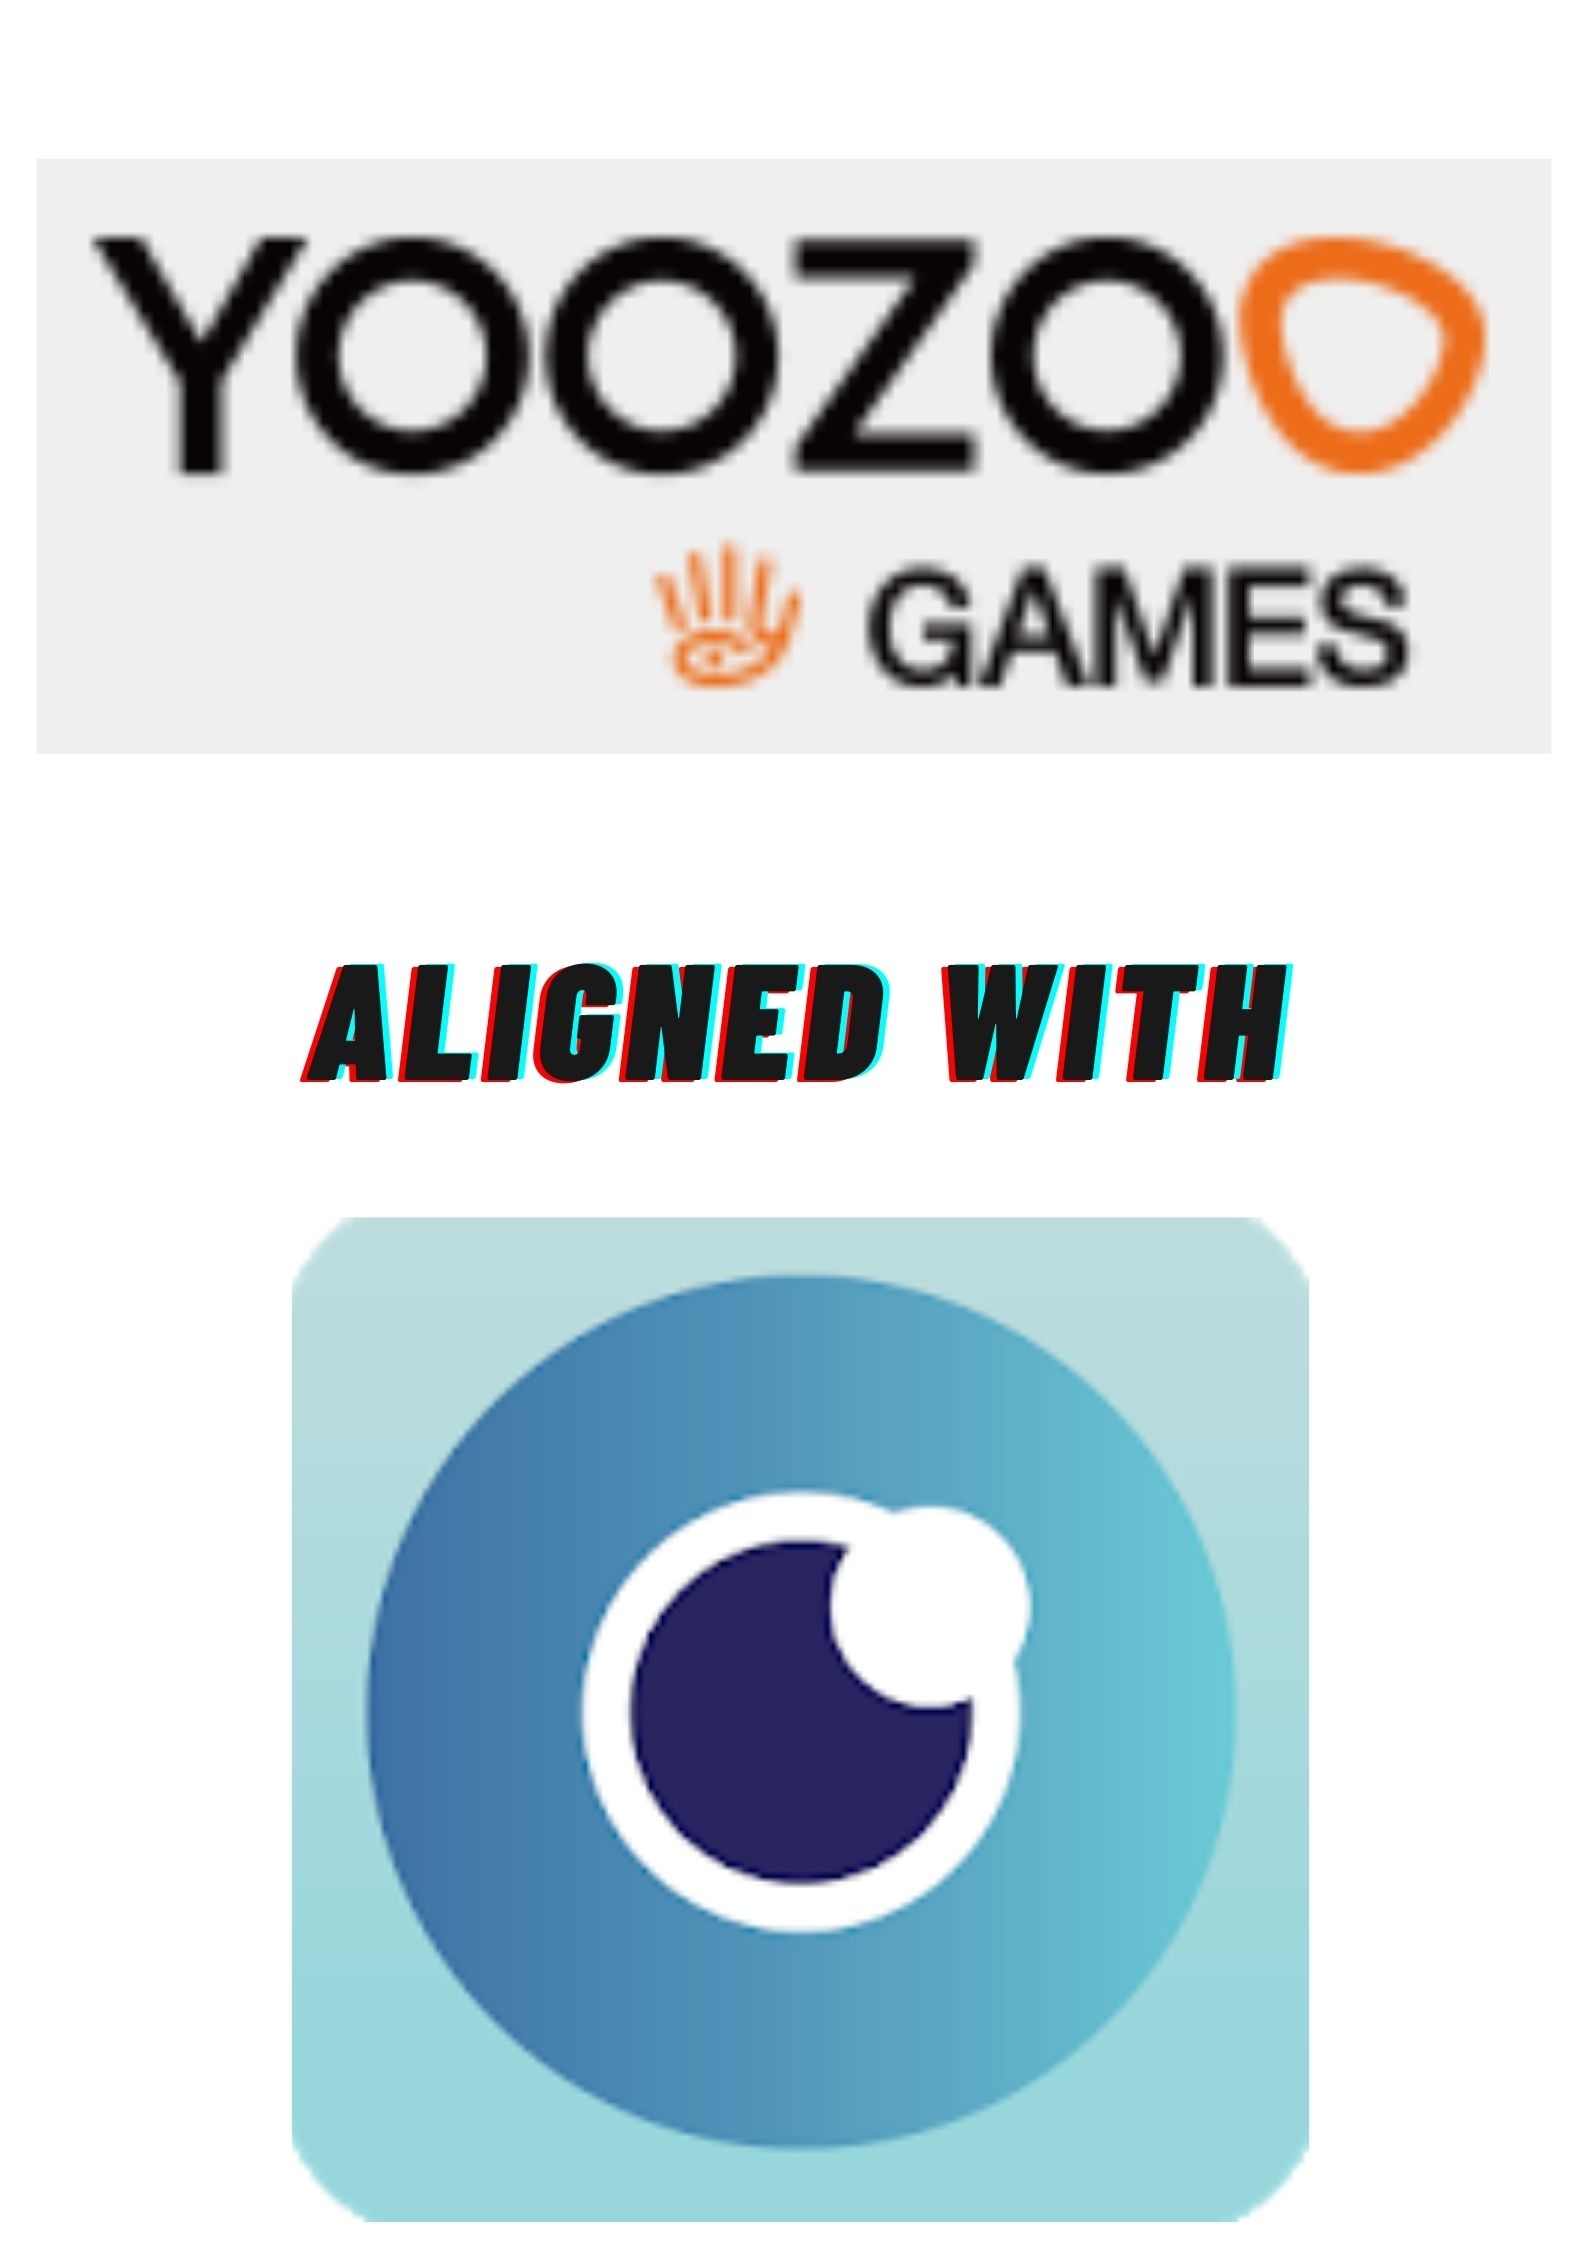 Global Entertainment Giant YOOZOO Aligns with Health Tech Company Plano to Tackle the Global Myopia Epidemic